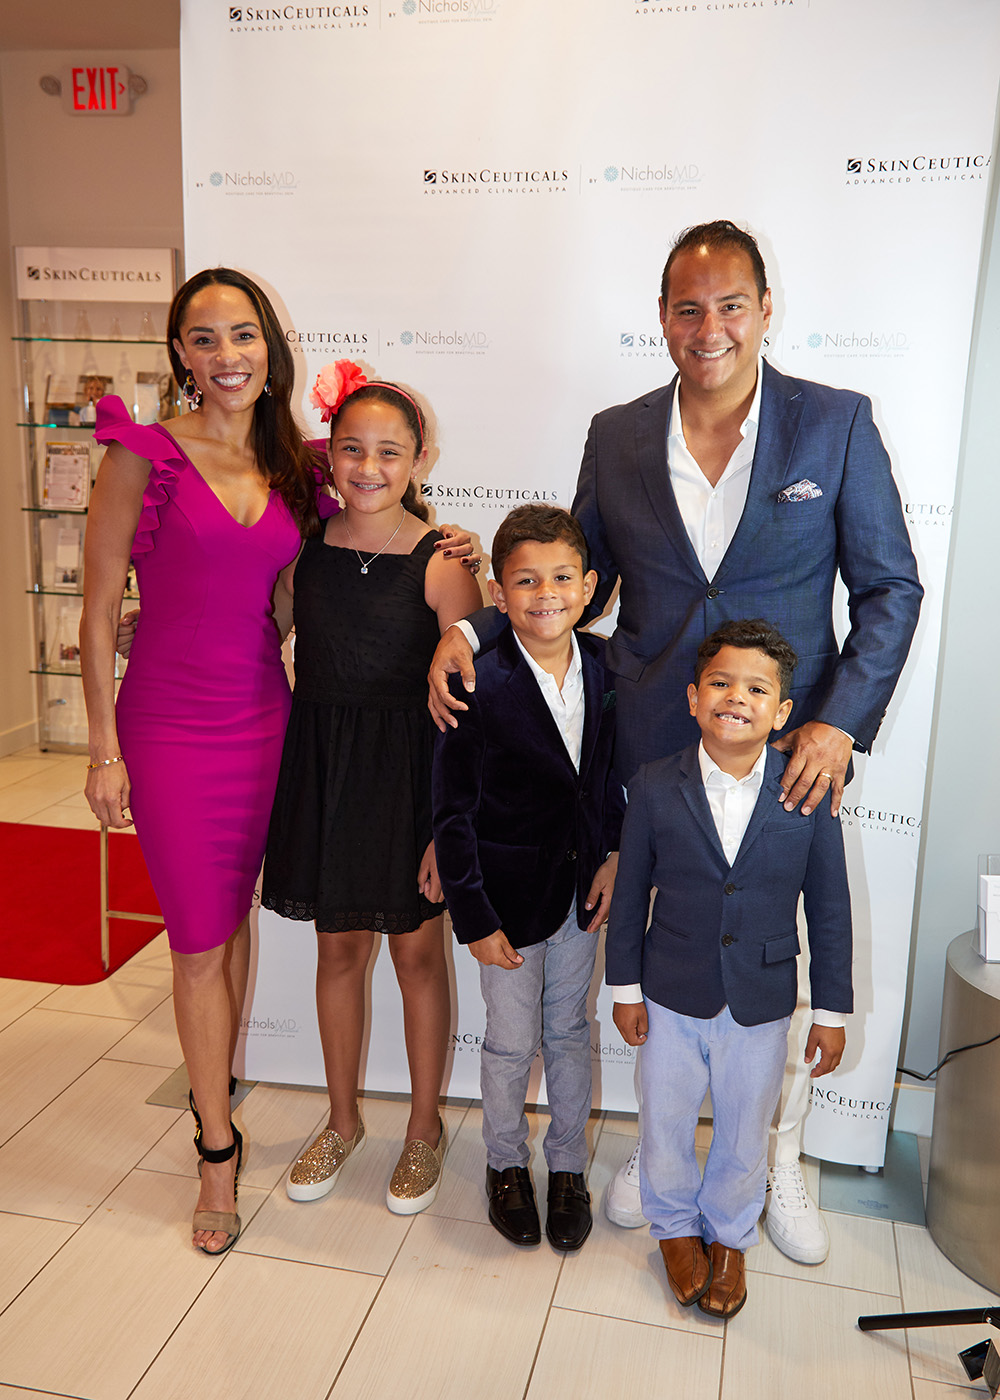 Kim Nichols MD and Chris Cananillas Family